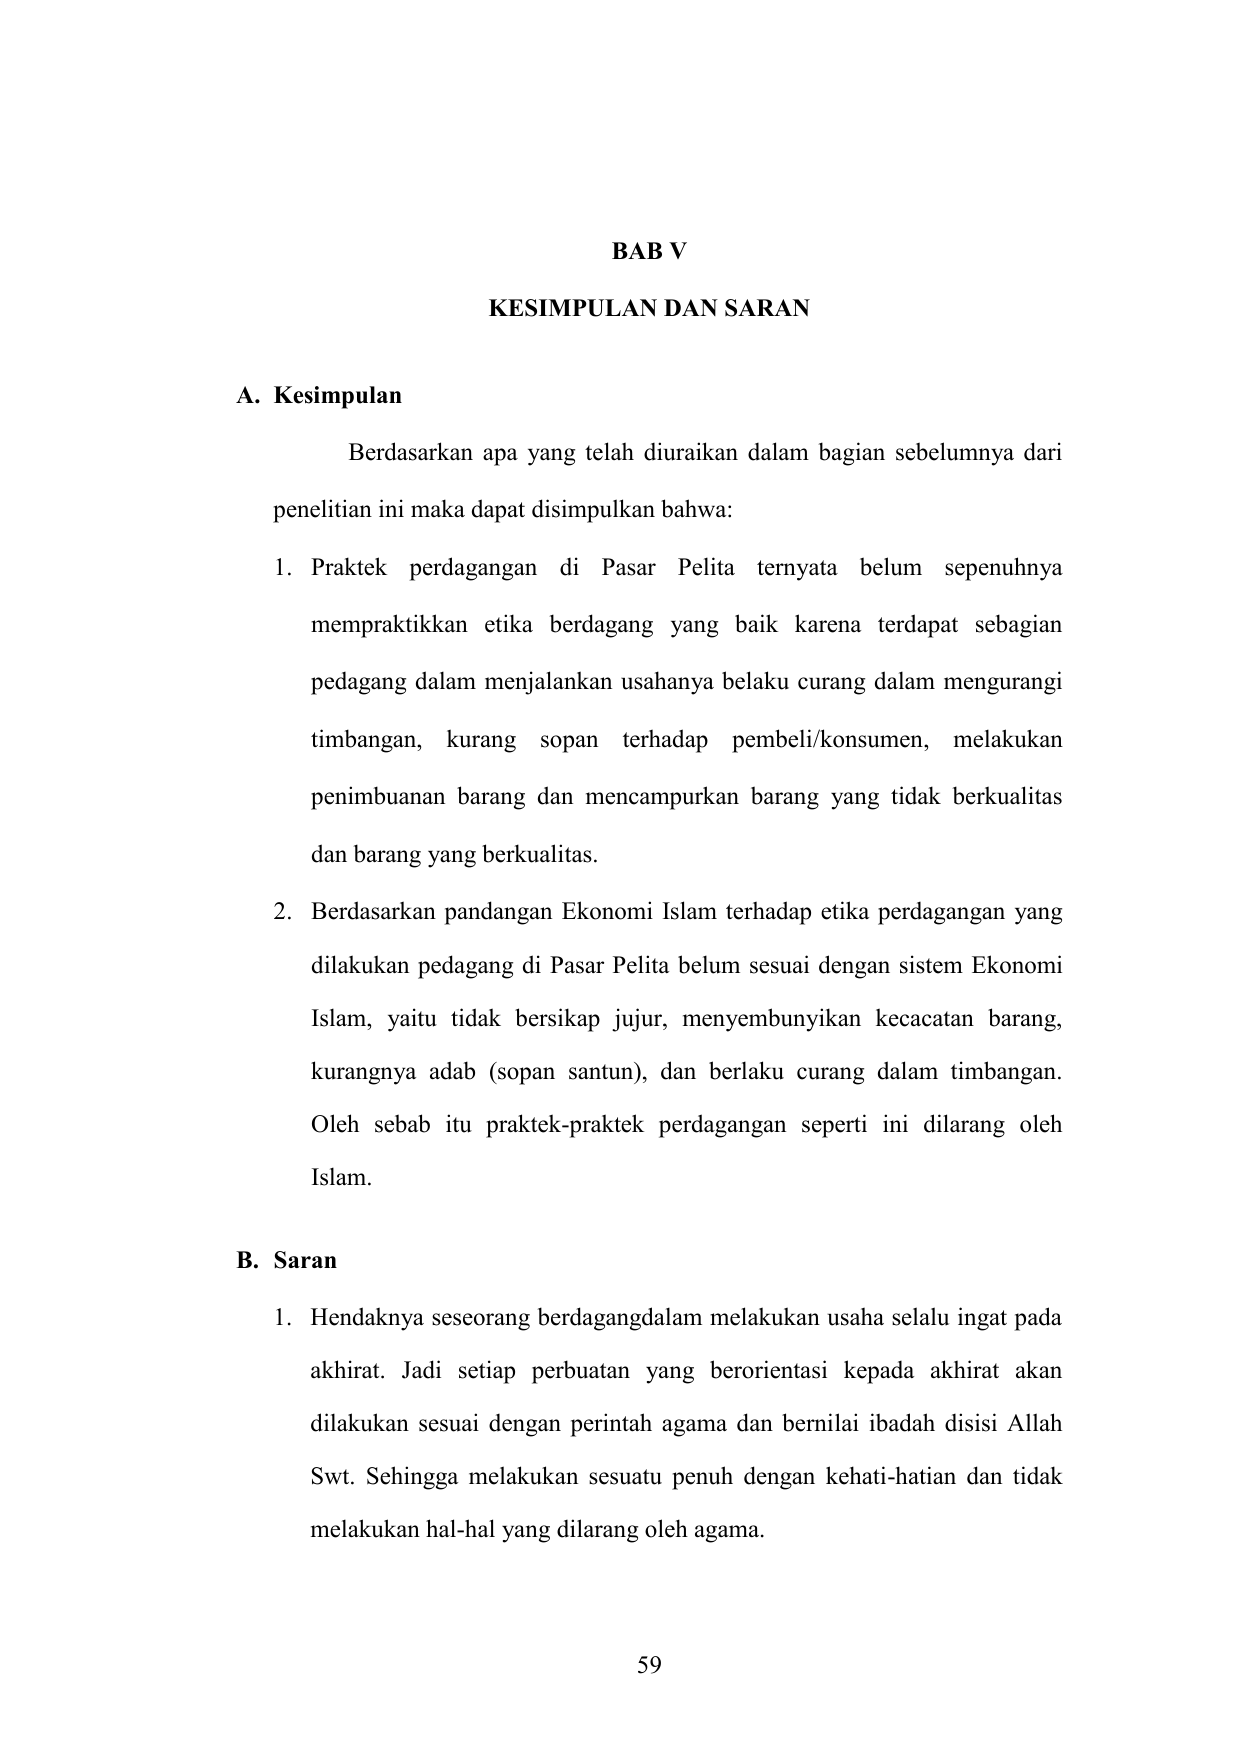 Contoh Makalah Perdagangan Internasional ( Download file DOC )